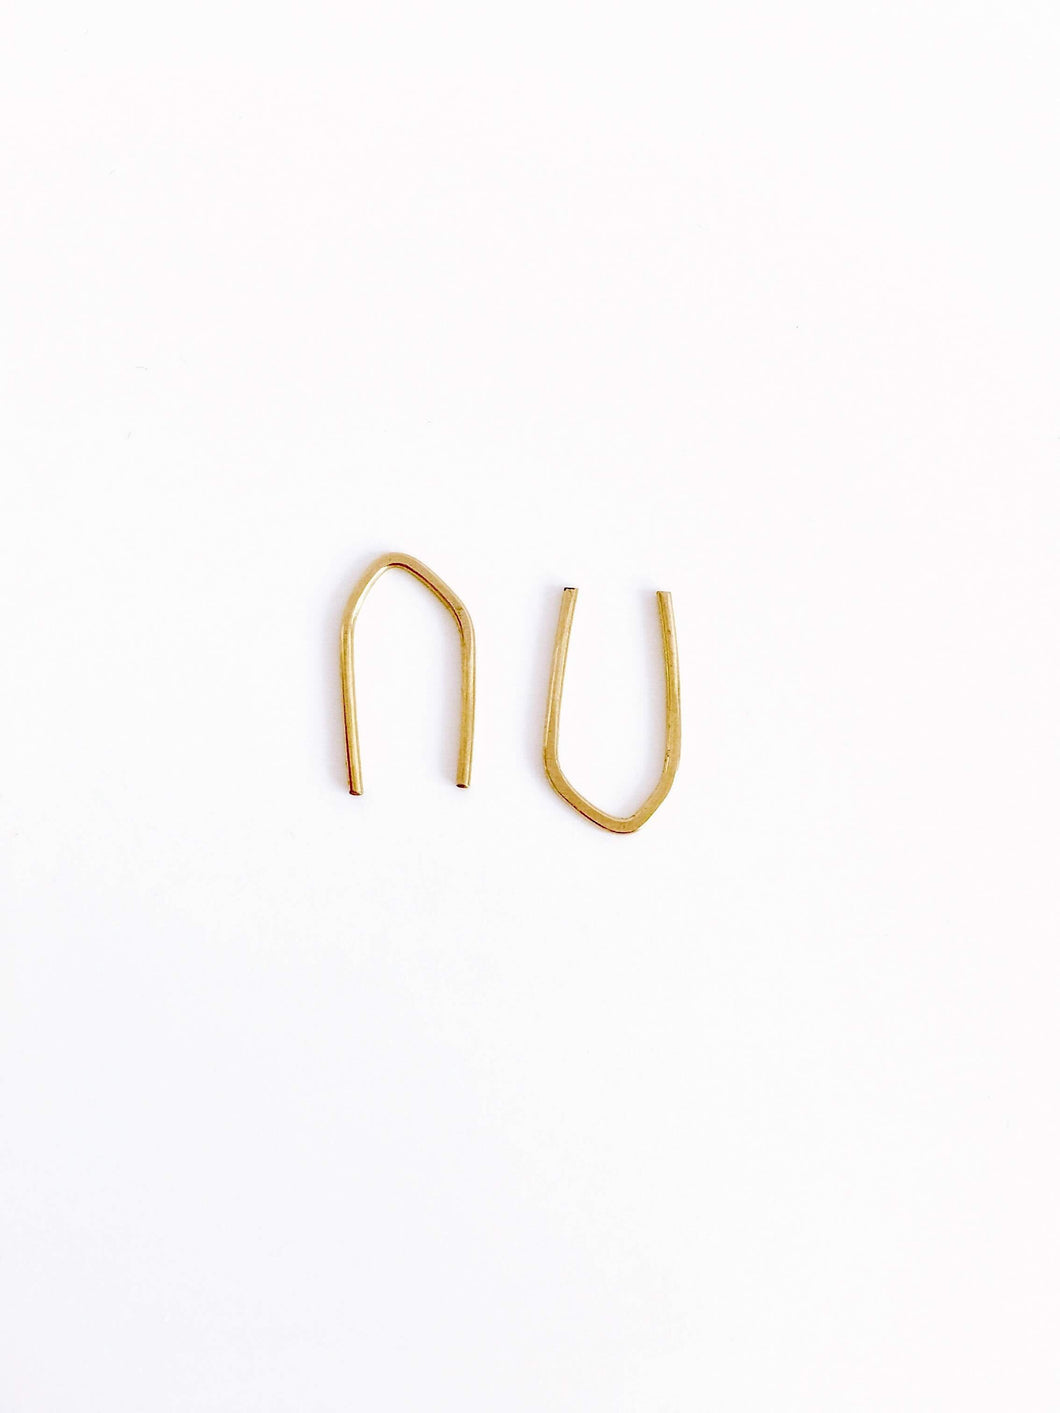 14k gold brave arc earrings, single or pair - andJules Jewelry